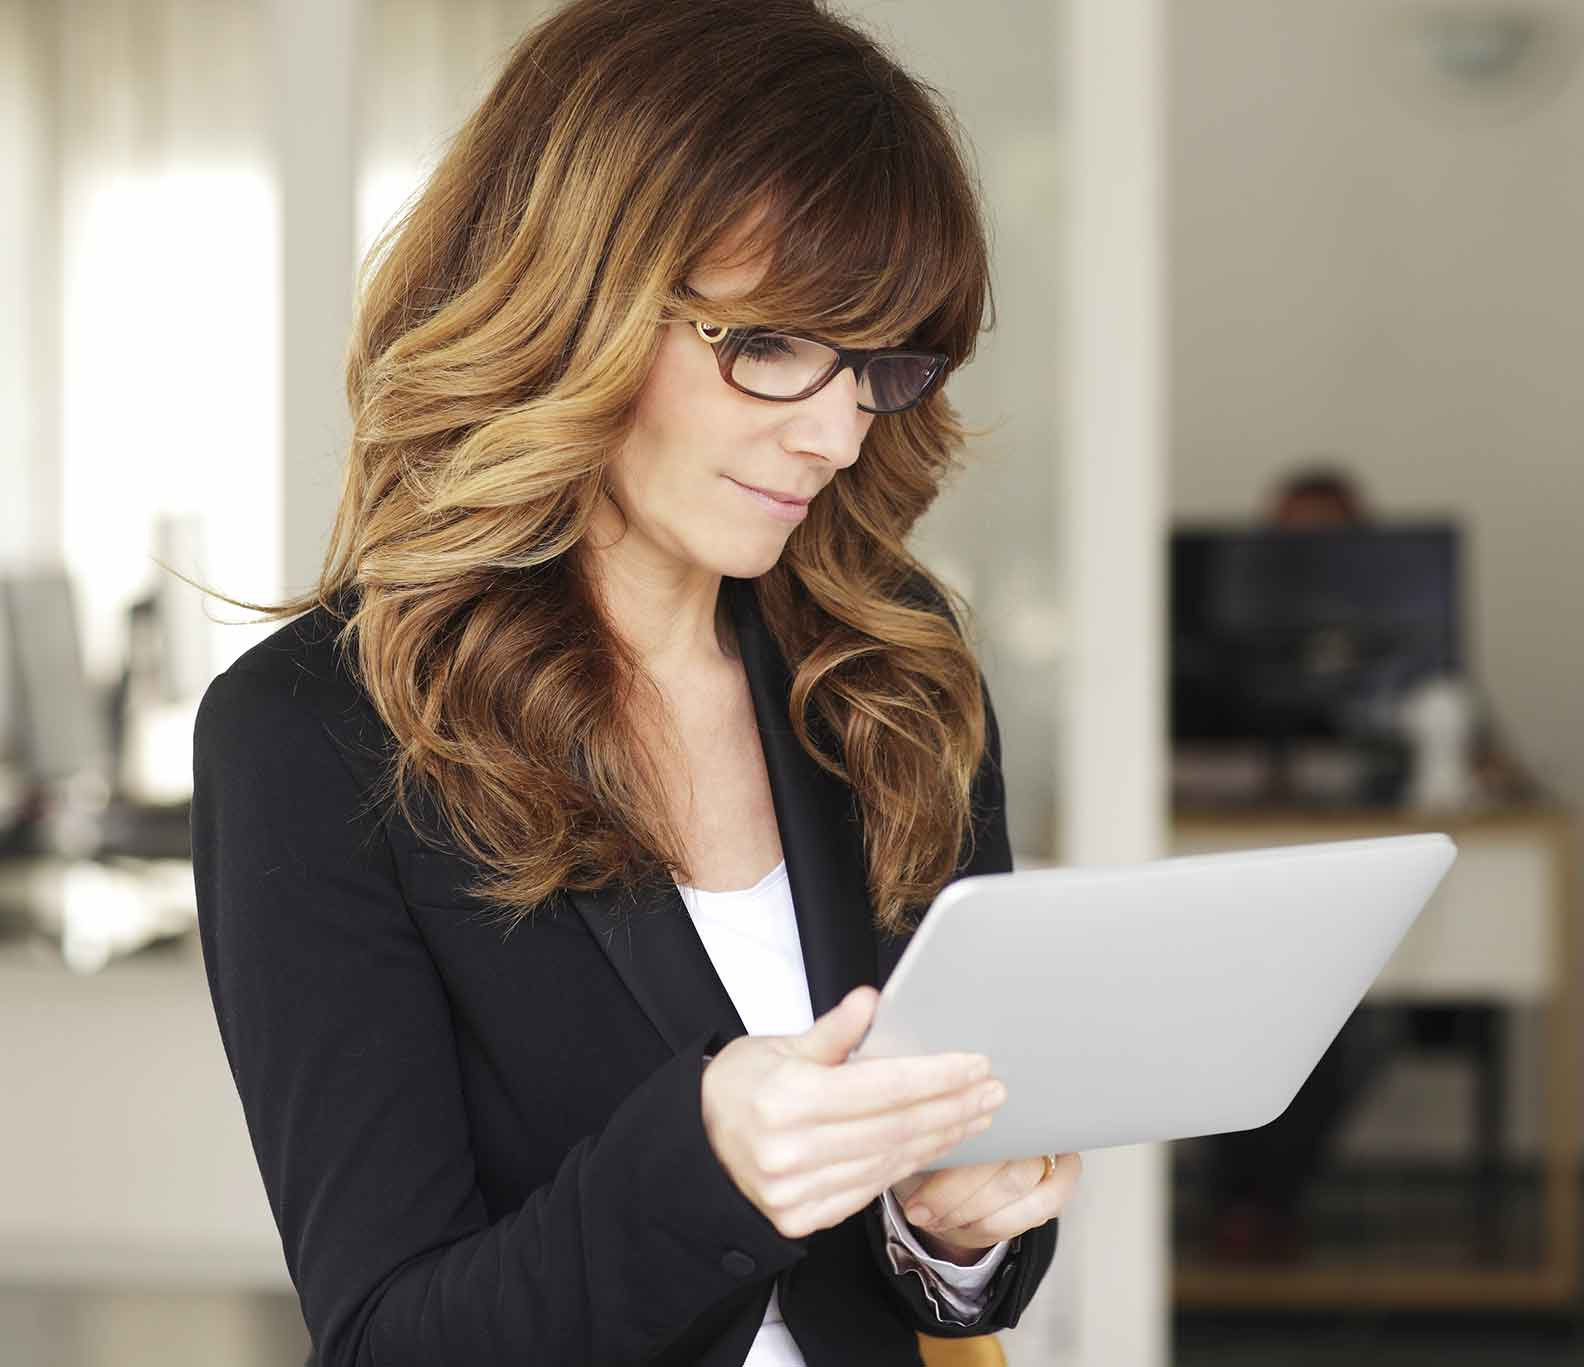 Documents Signed Fast with Electronic Signatures